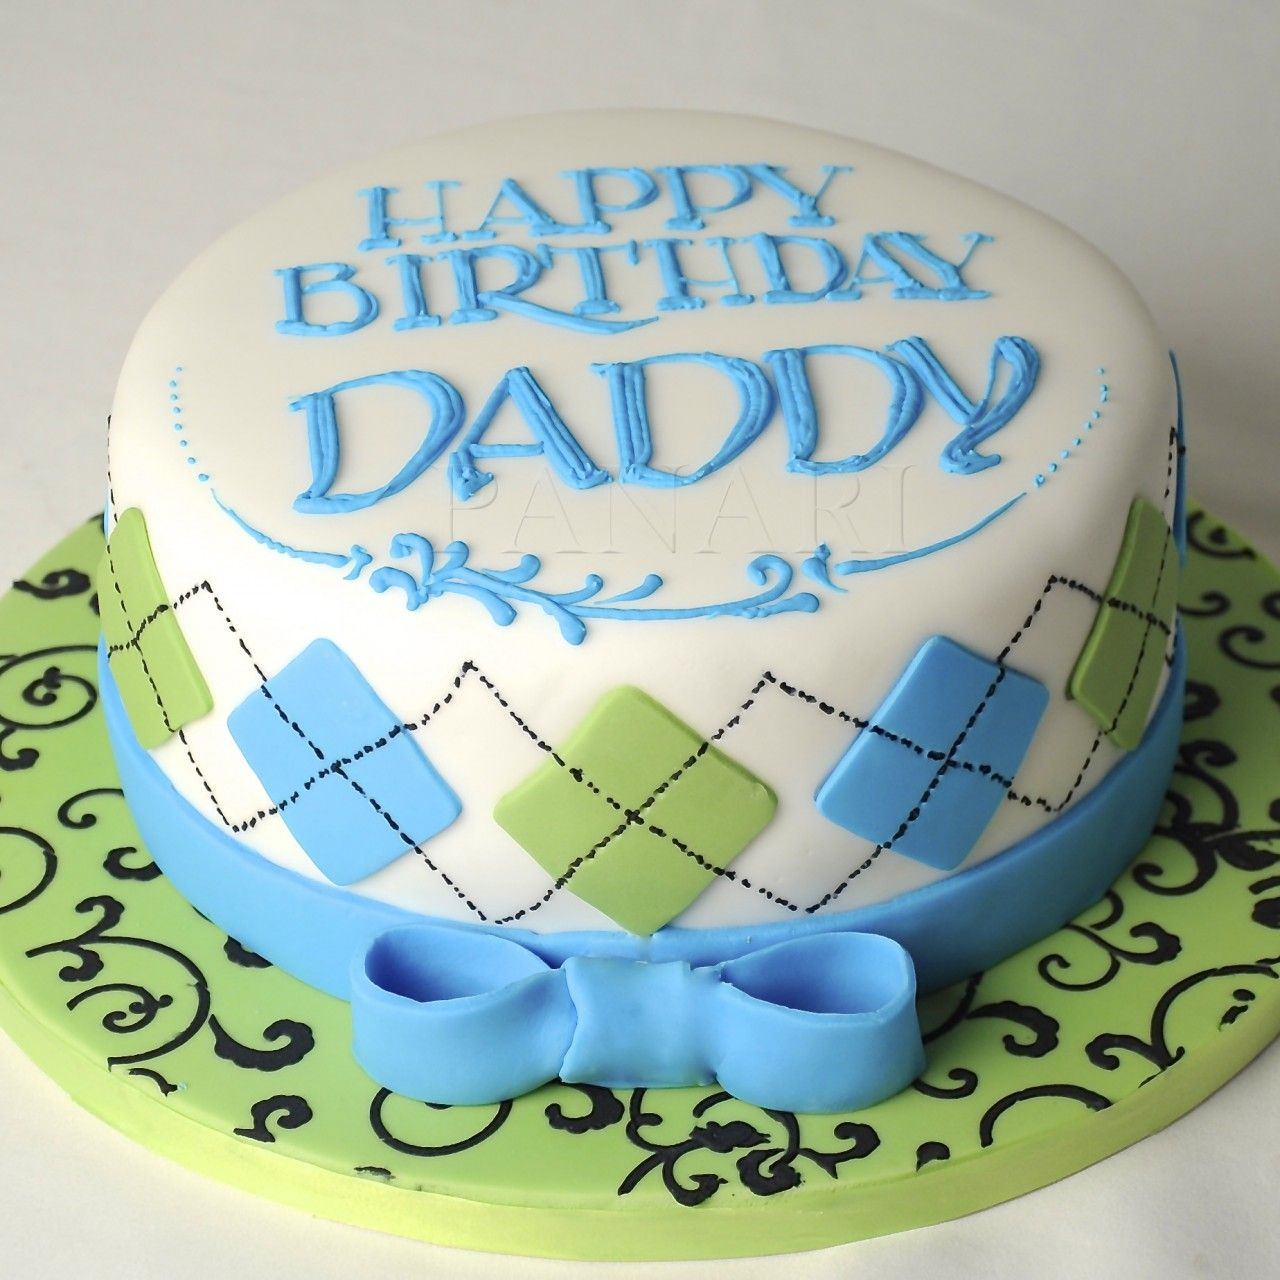 Birthday Cake Images Sonu : Happy Birthday Daddy! Cakes Pinterest Happy birthday ...